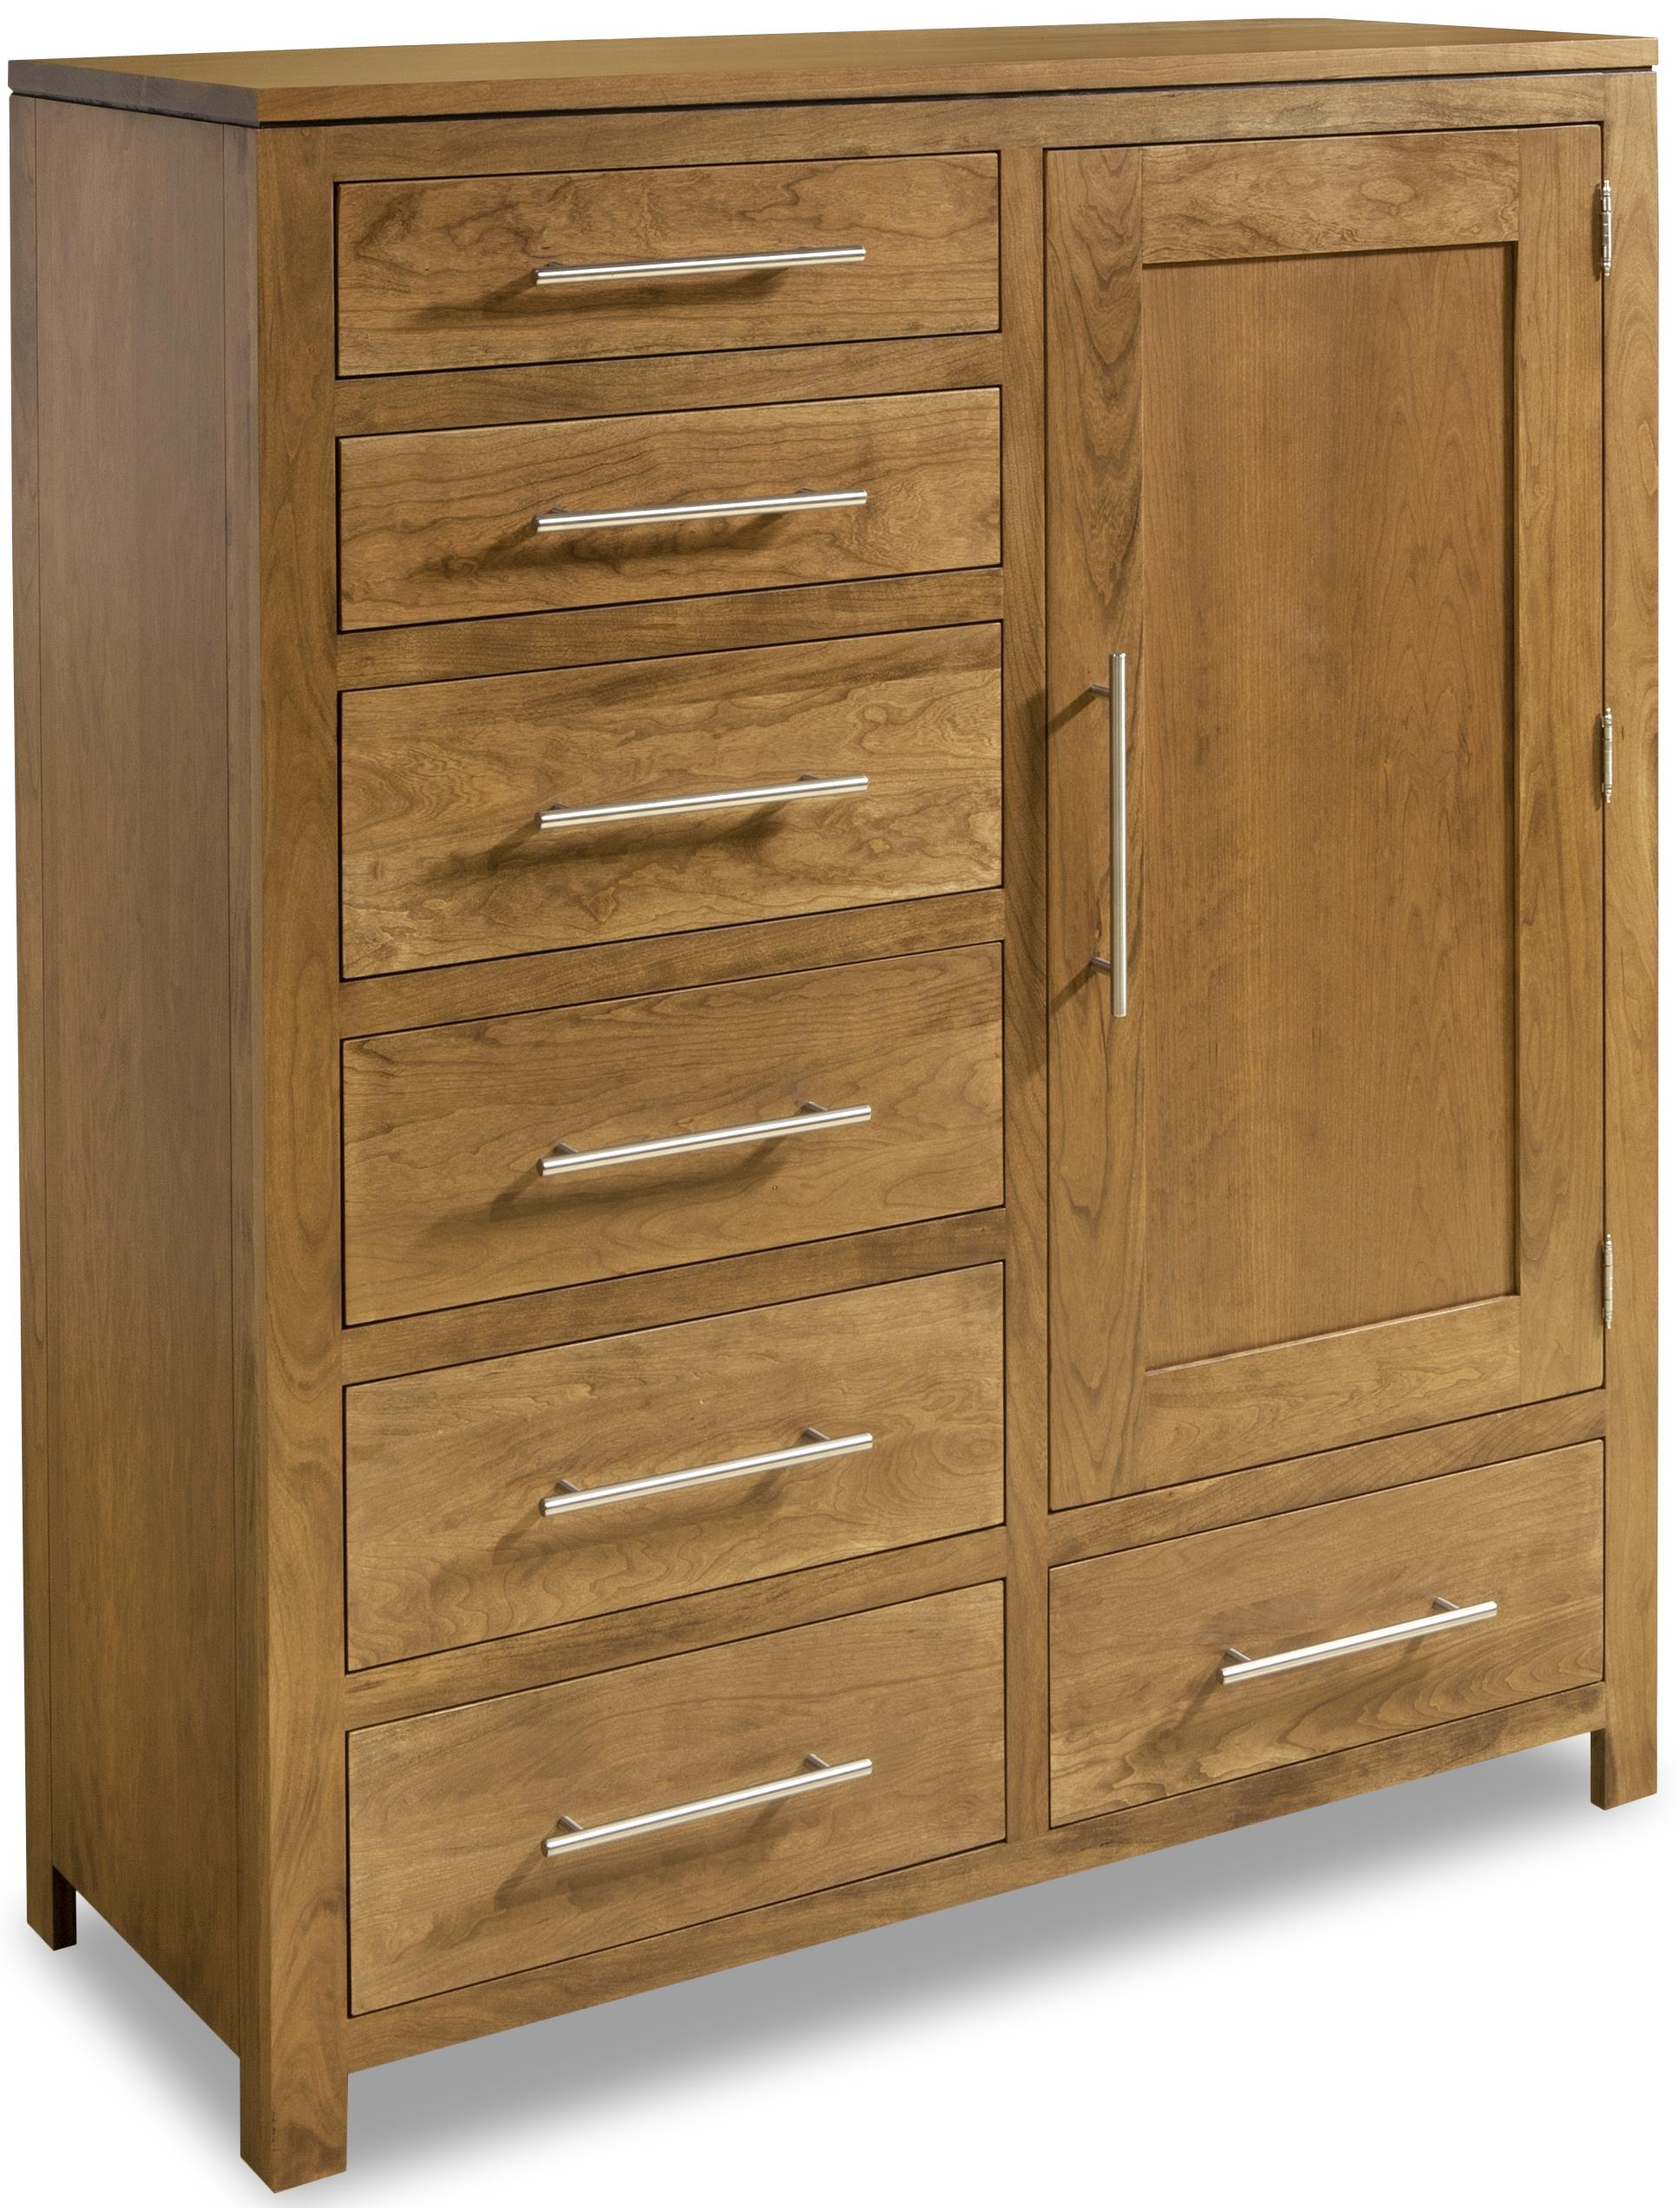 Modern Bachelor's Chest by Daniel's Amish at Saugerties Furniture Mart